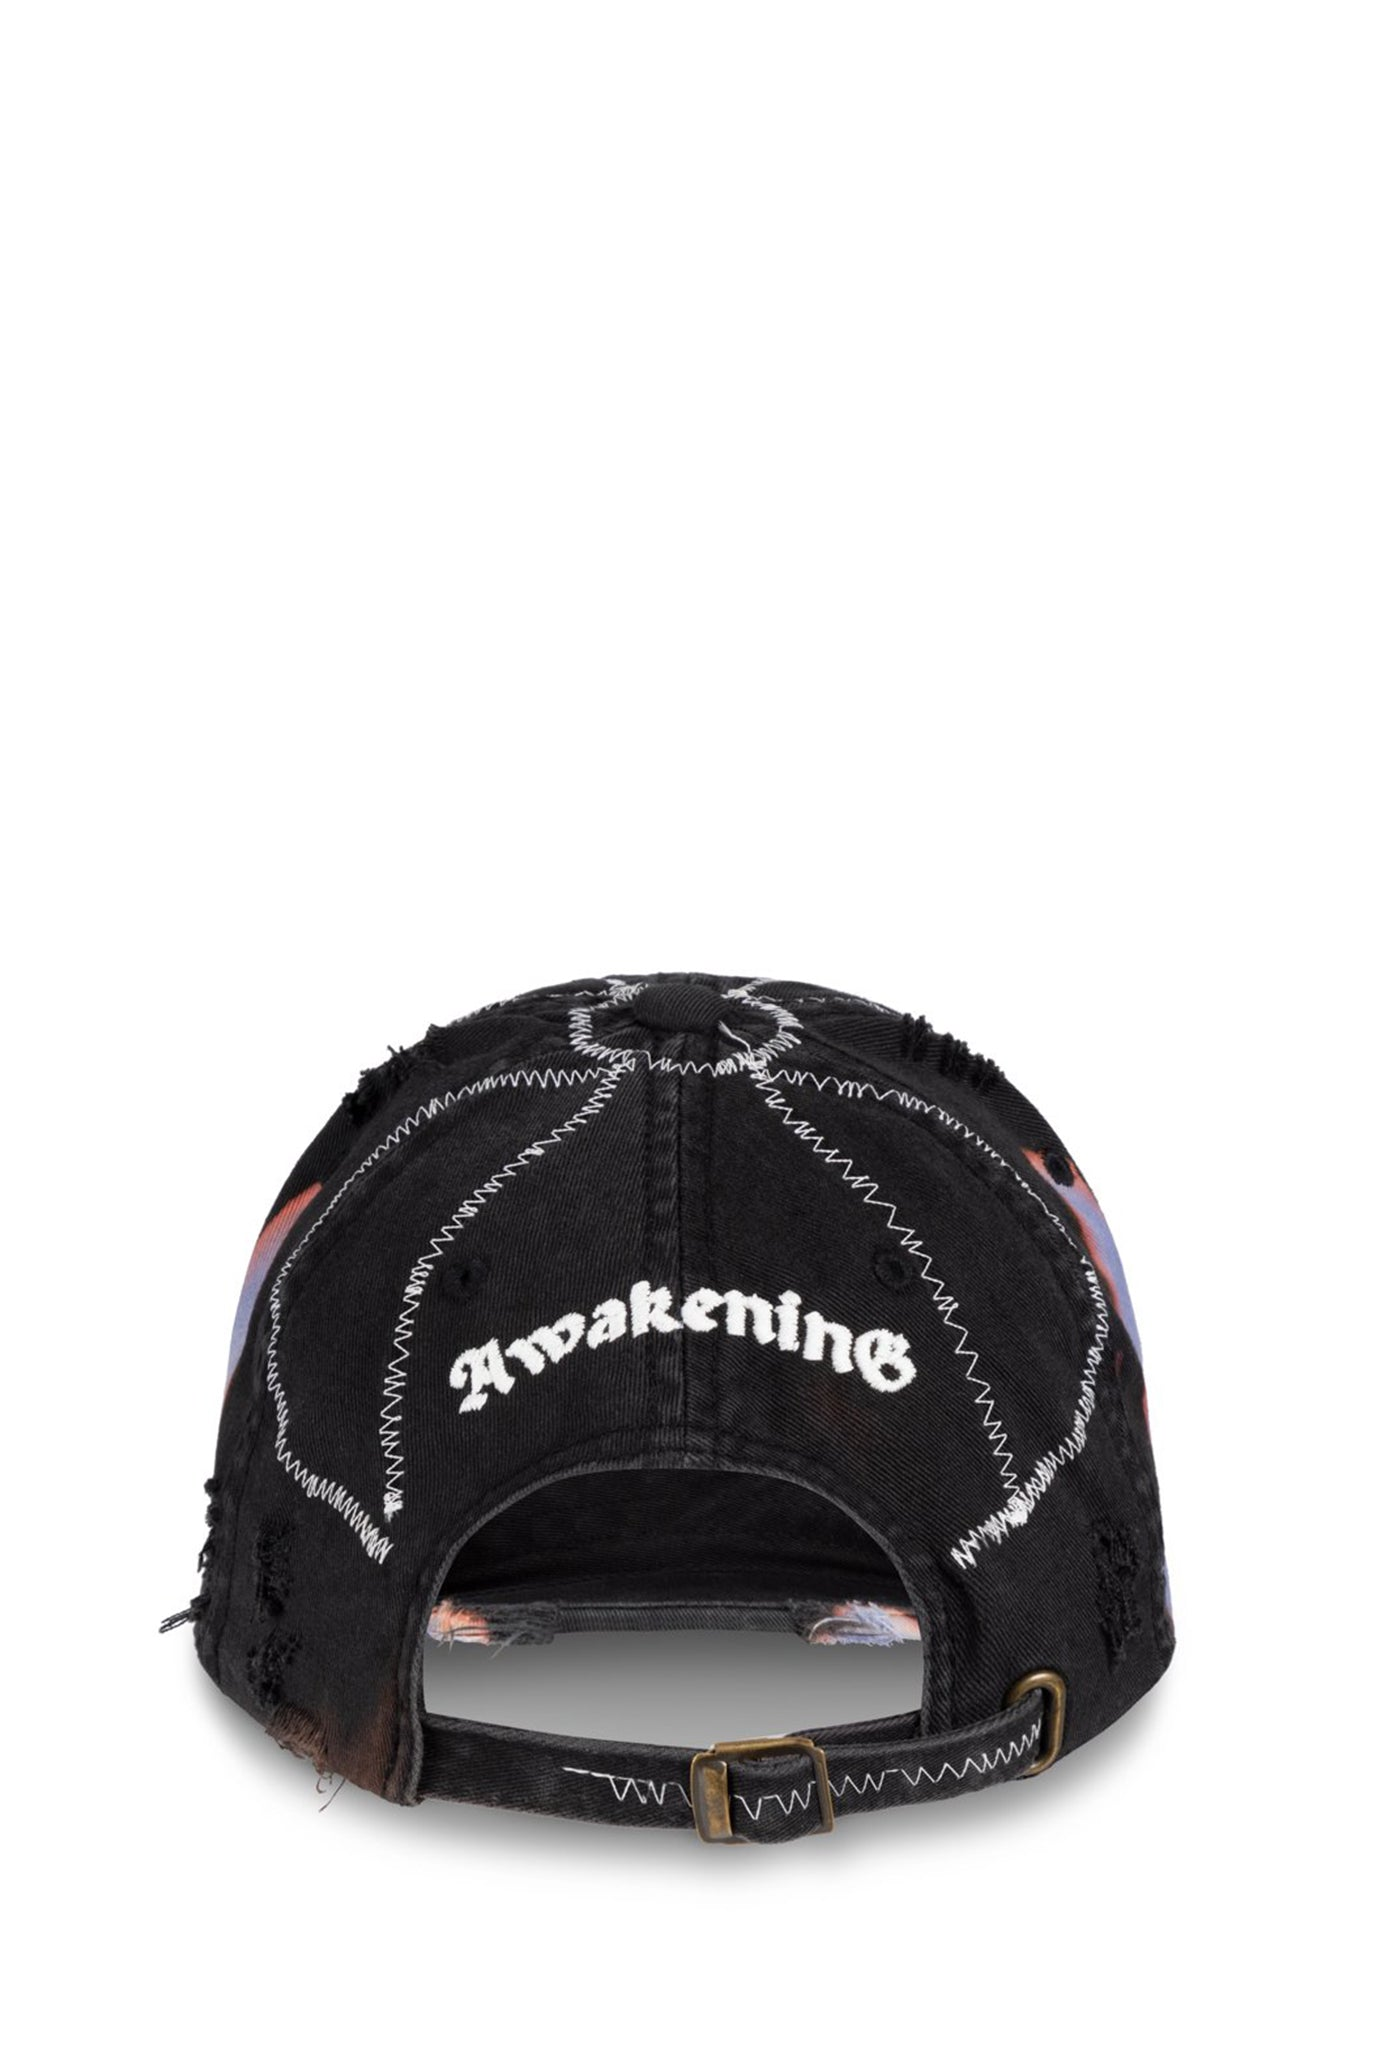 Claire Barrow Xtreme Sports 'Awakening Cap'